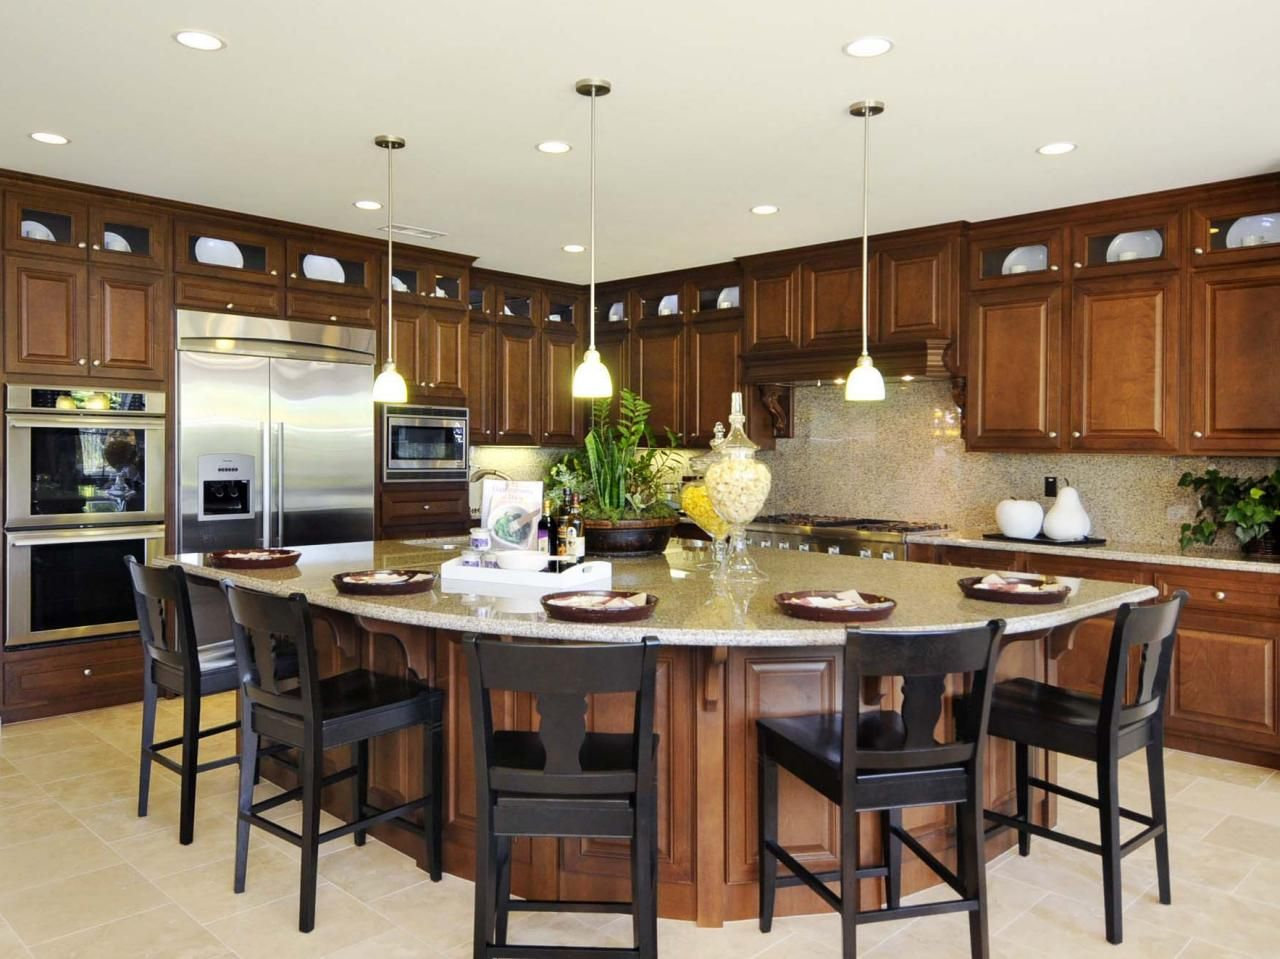 Kitchen Island Design Ideas Pictures Options Tips Kitchen Island Design Kitchen Island With Seating Home Kitchens